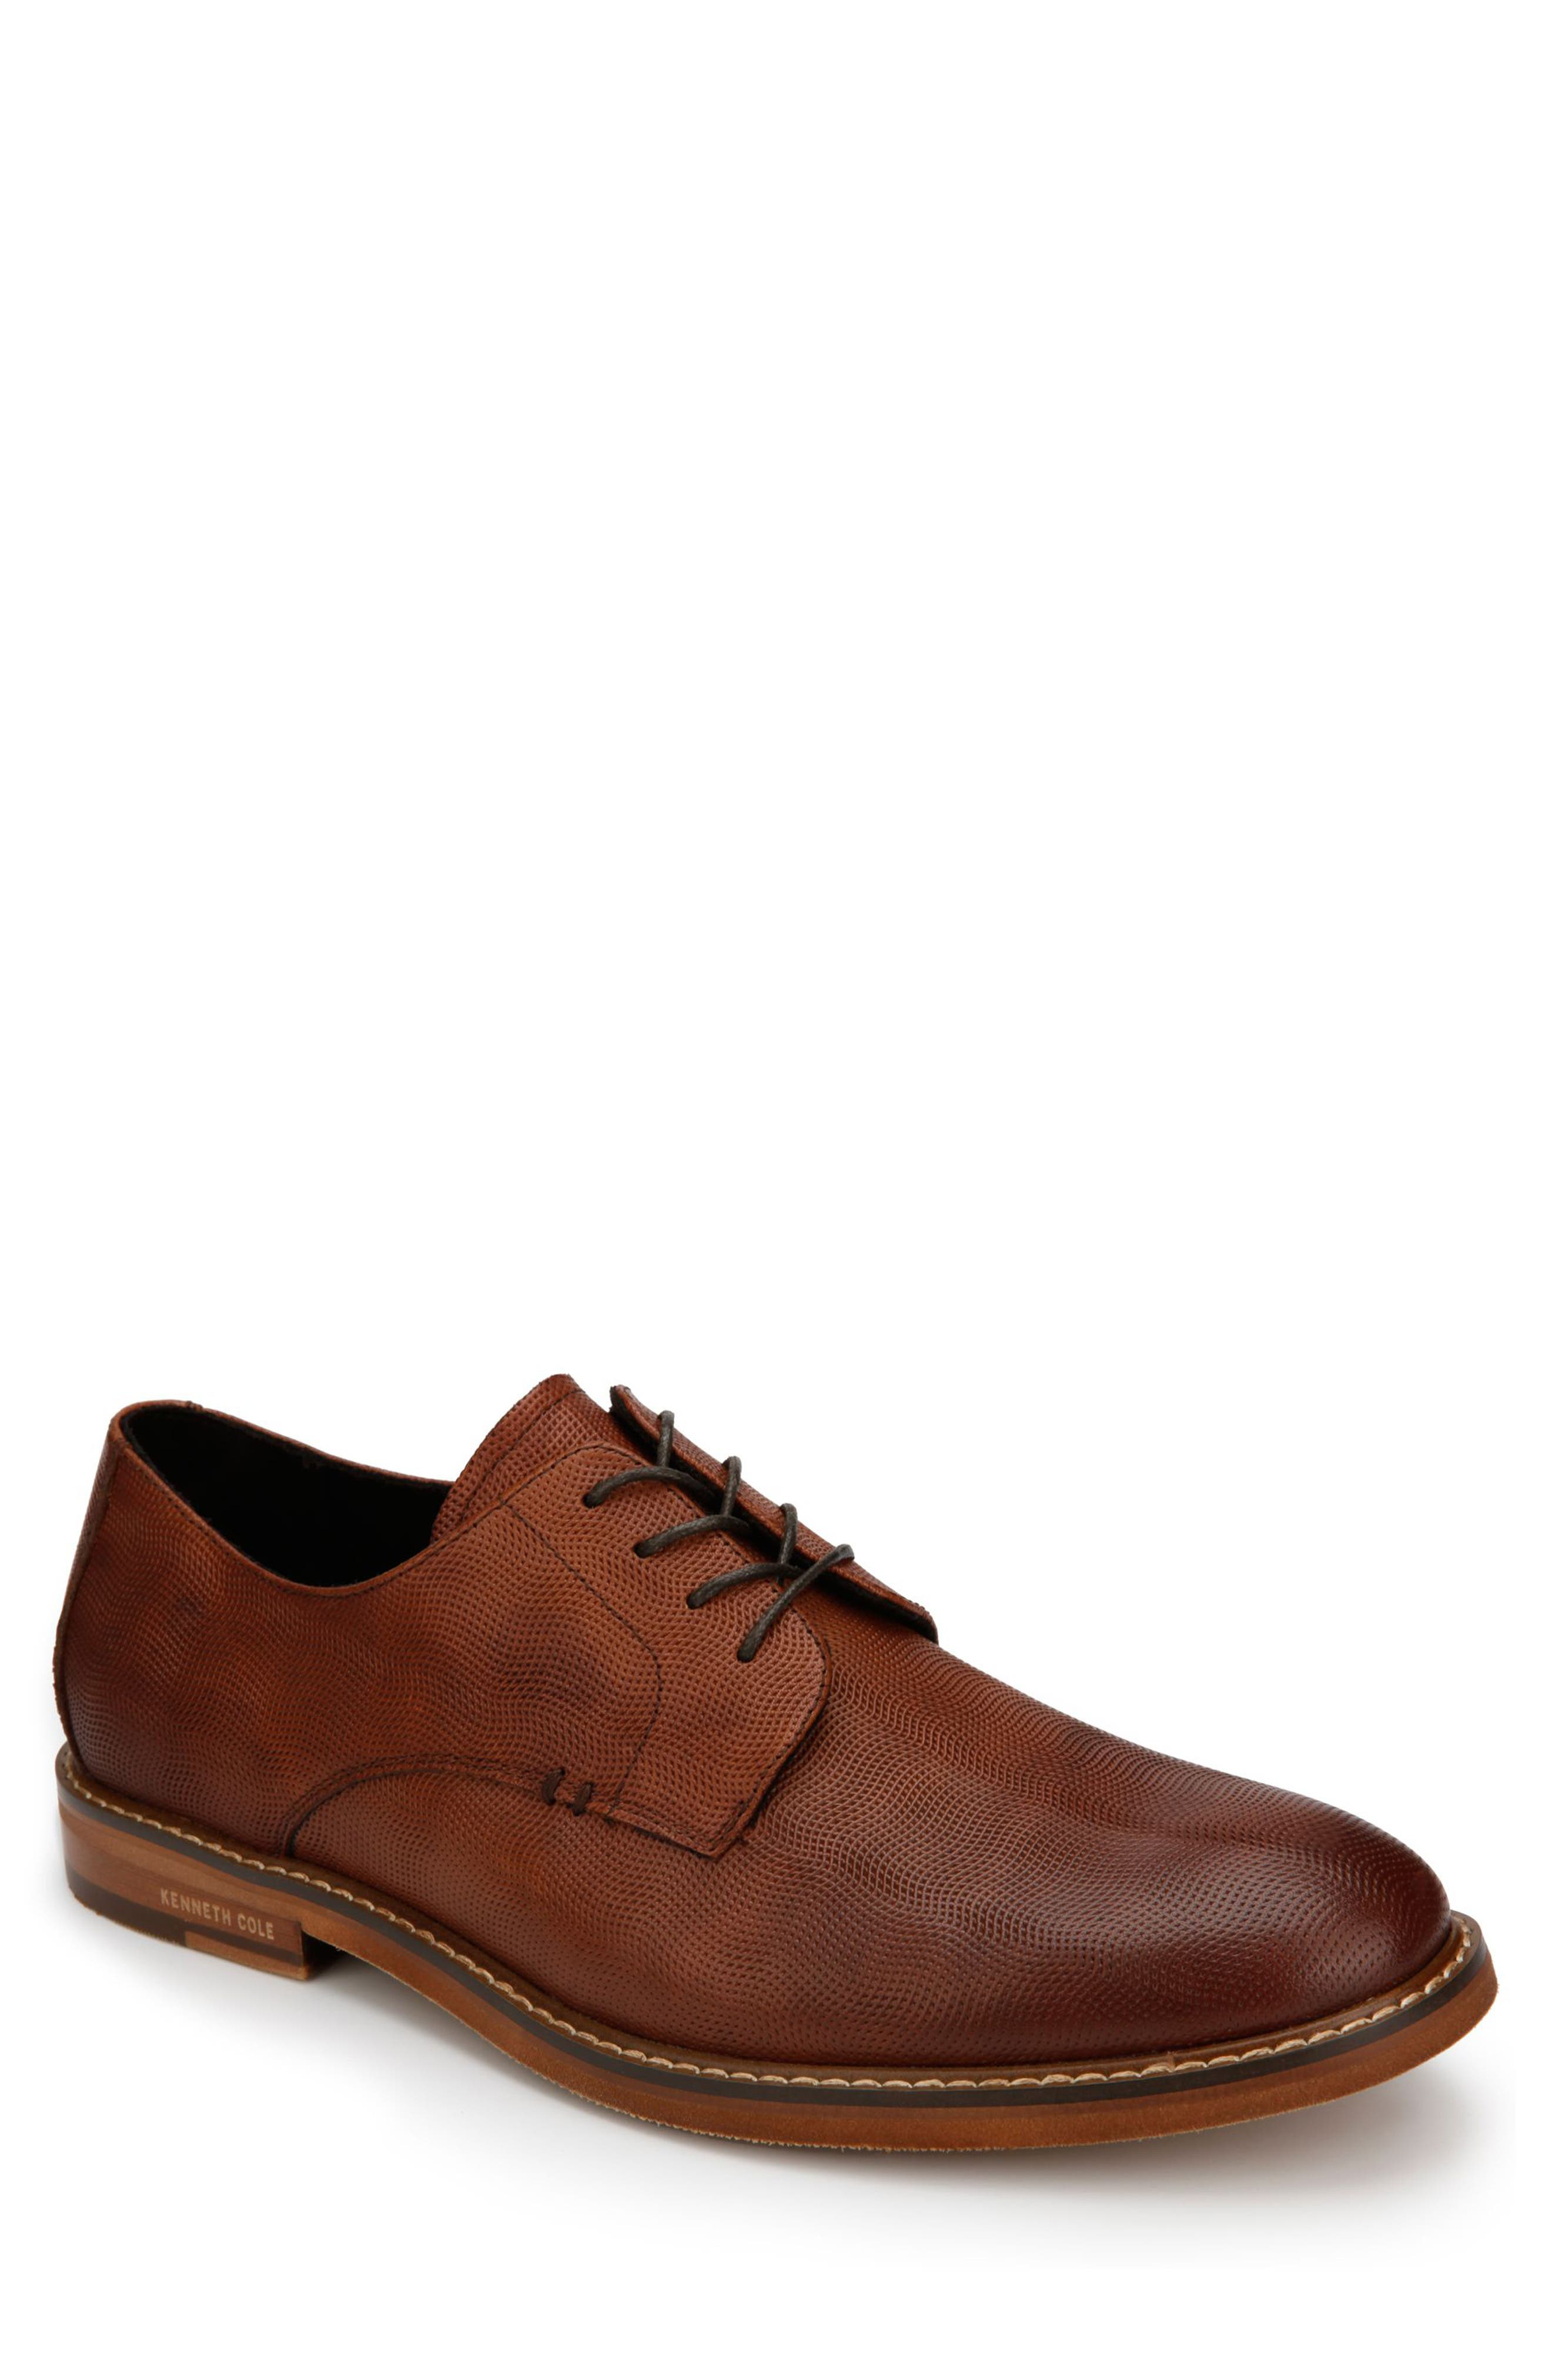 KENNETH COLE NEW YORK Dance Textured Plain Toe Derby, Main, color, COGNAC EMBOSSED LEATHER